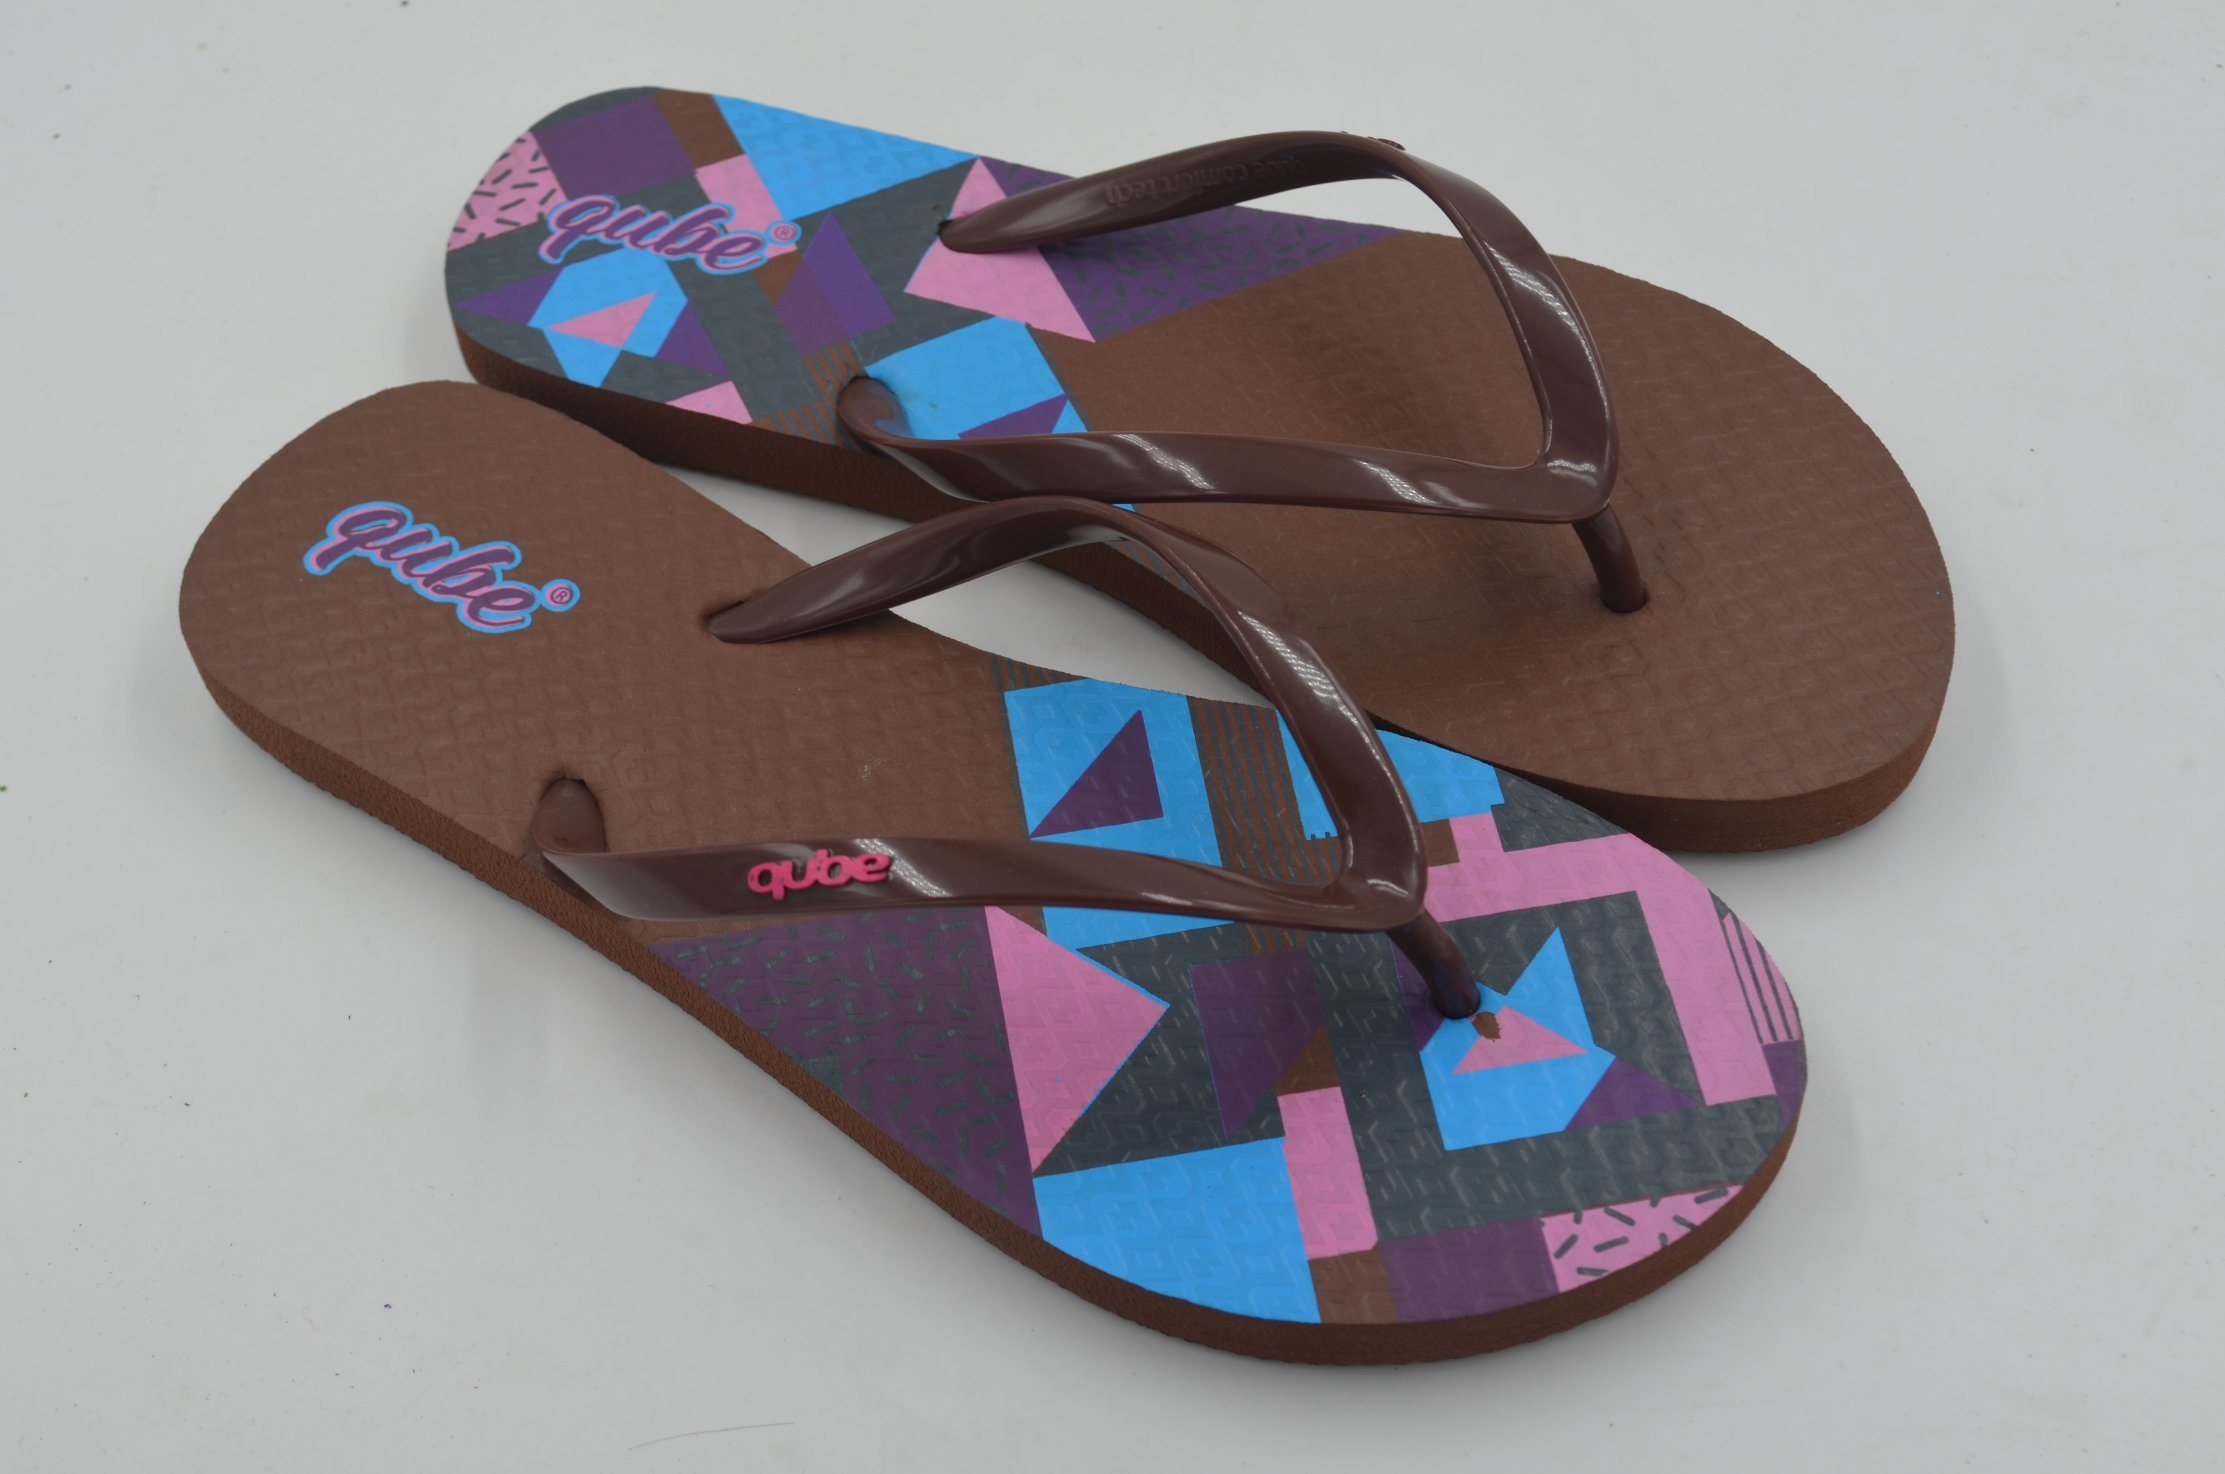 0d4214fa9fc0 China 2018 Newest Design Rubber Flip Flops Whole Pvc Beach